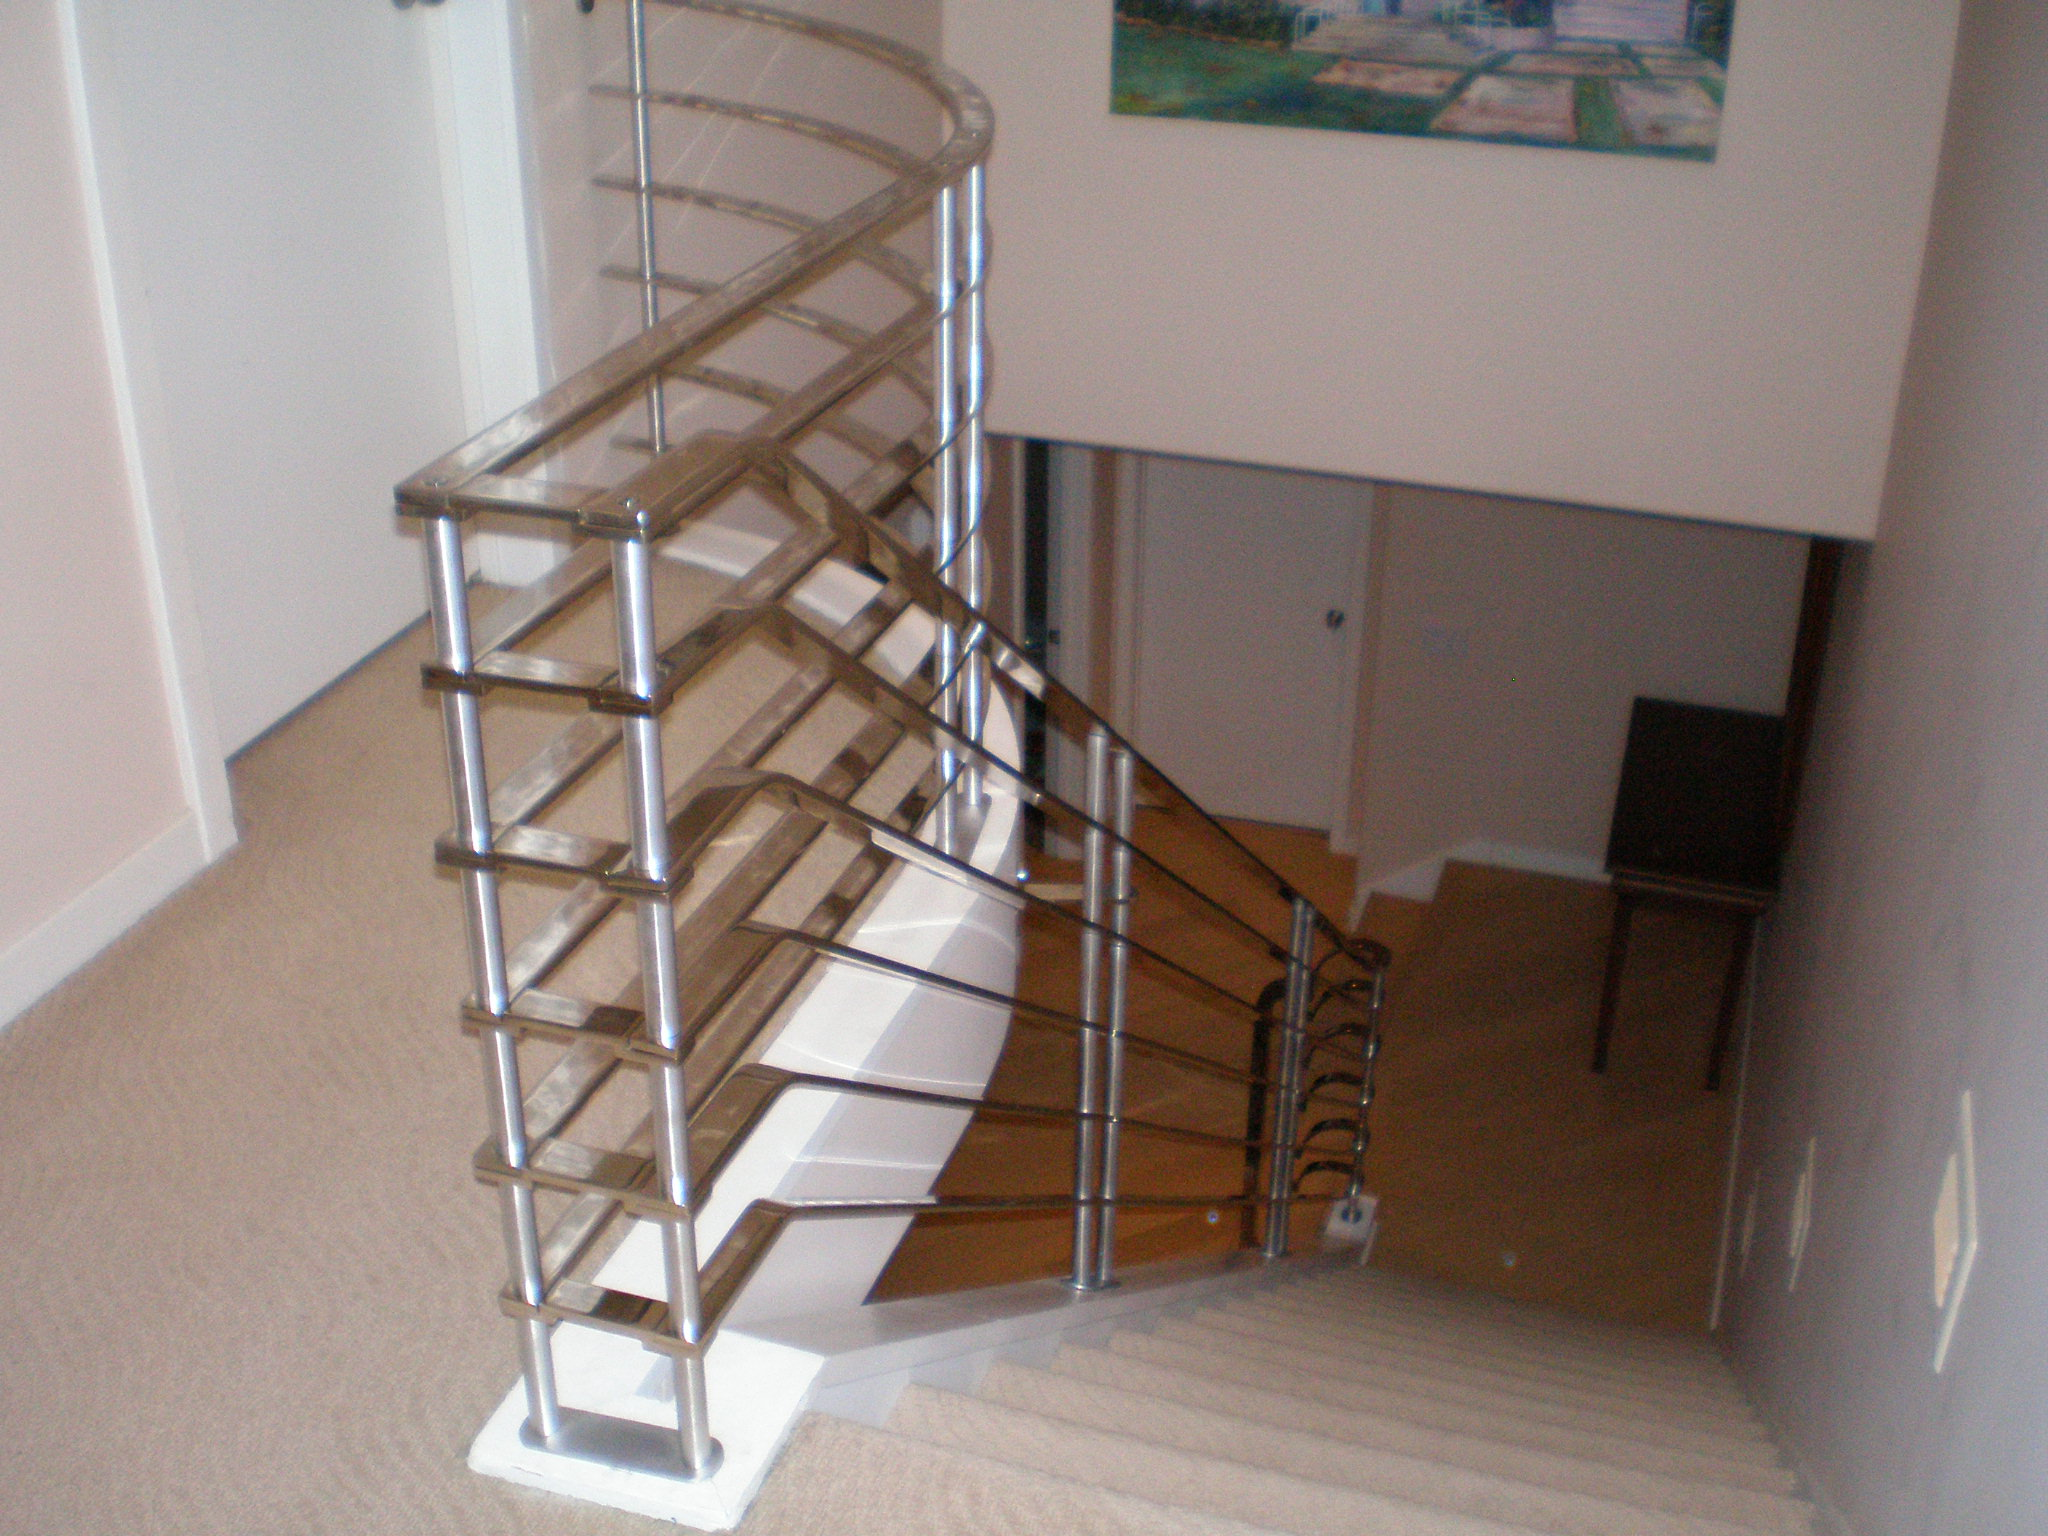 Best Chrome Plated Stair Railing Art Deco Fabulousness Jmr Steel Stair Railing Steel Stairs 400 x 300